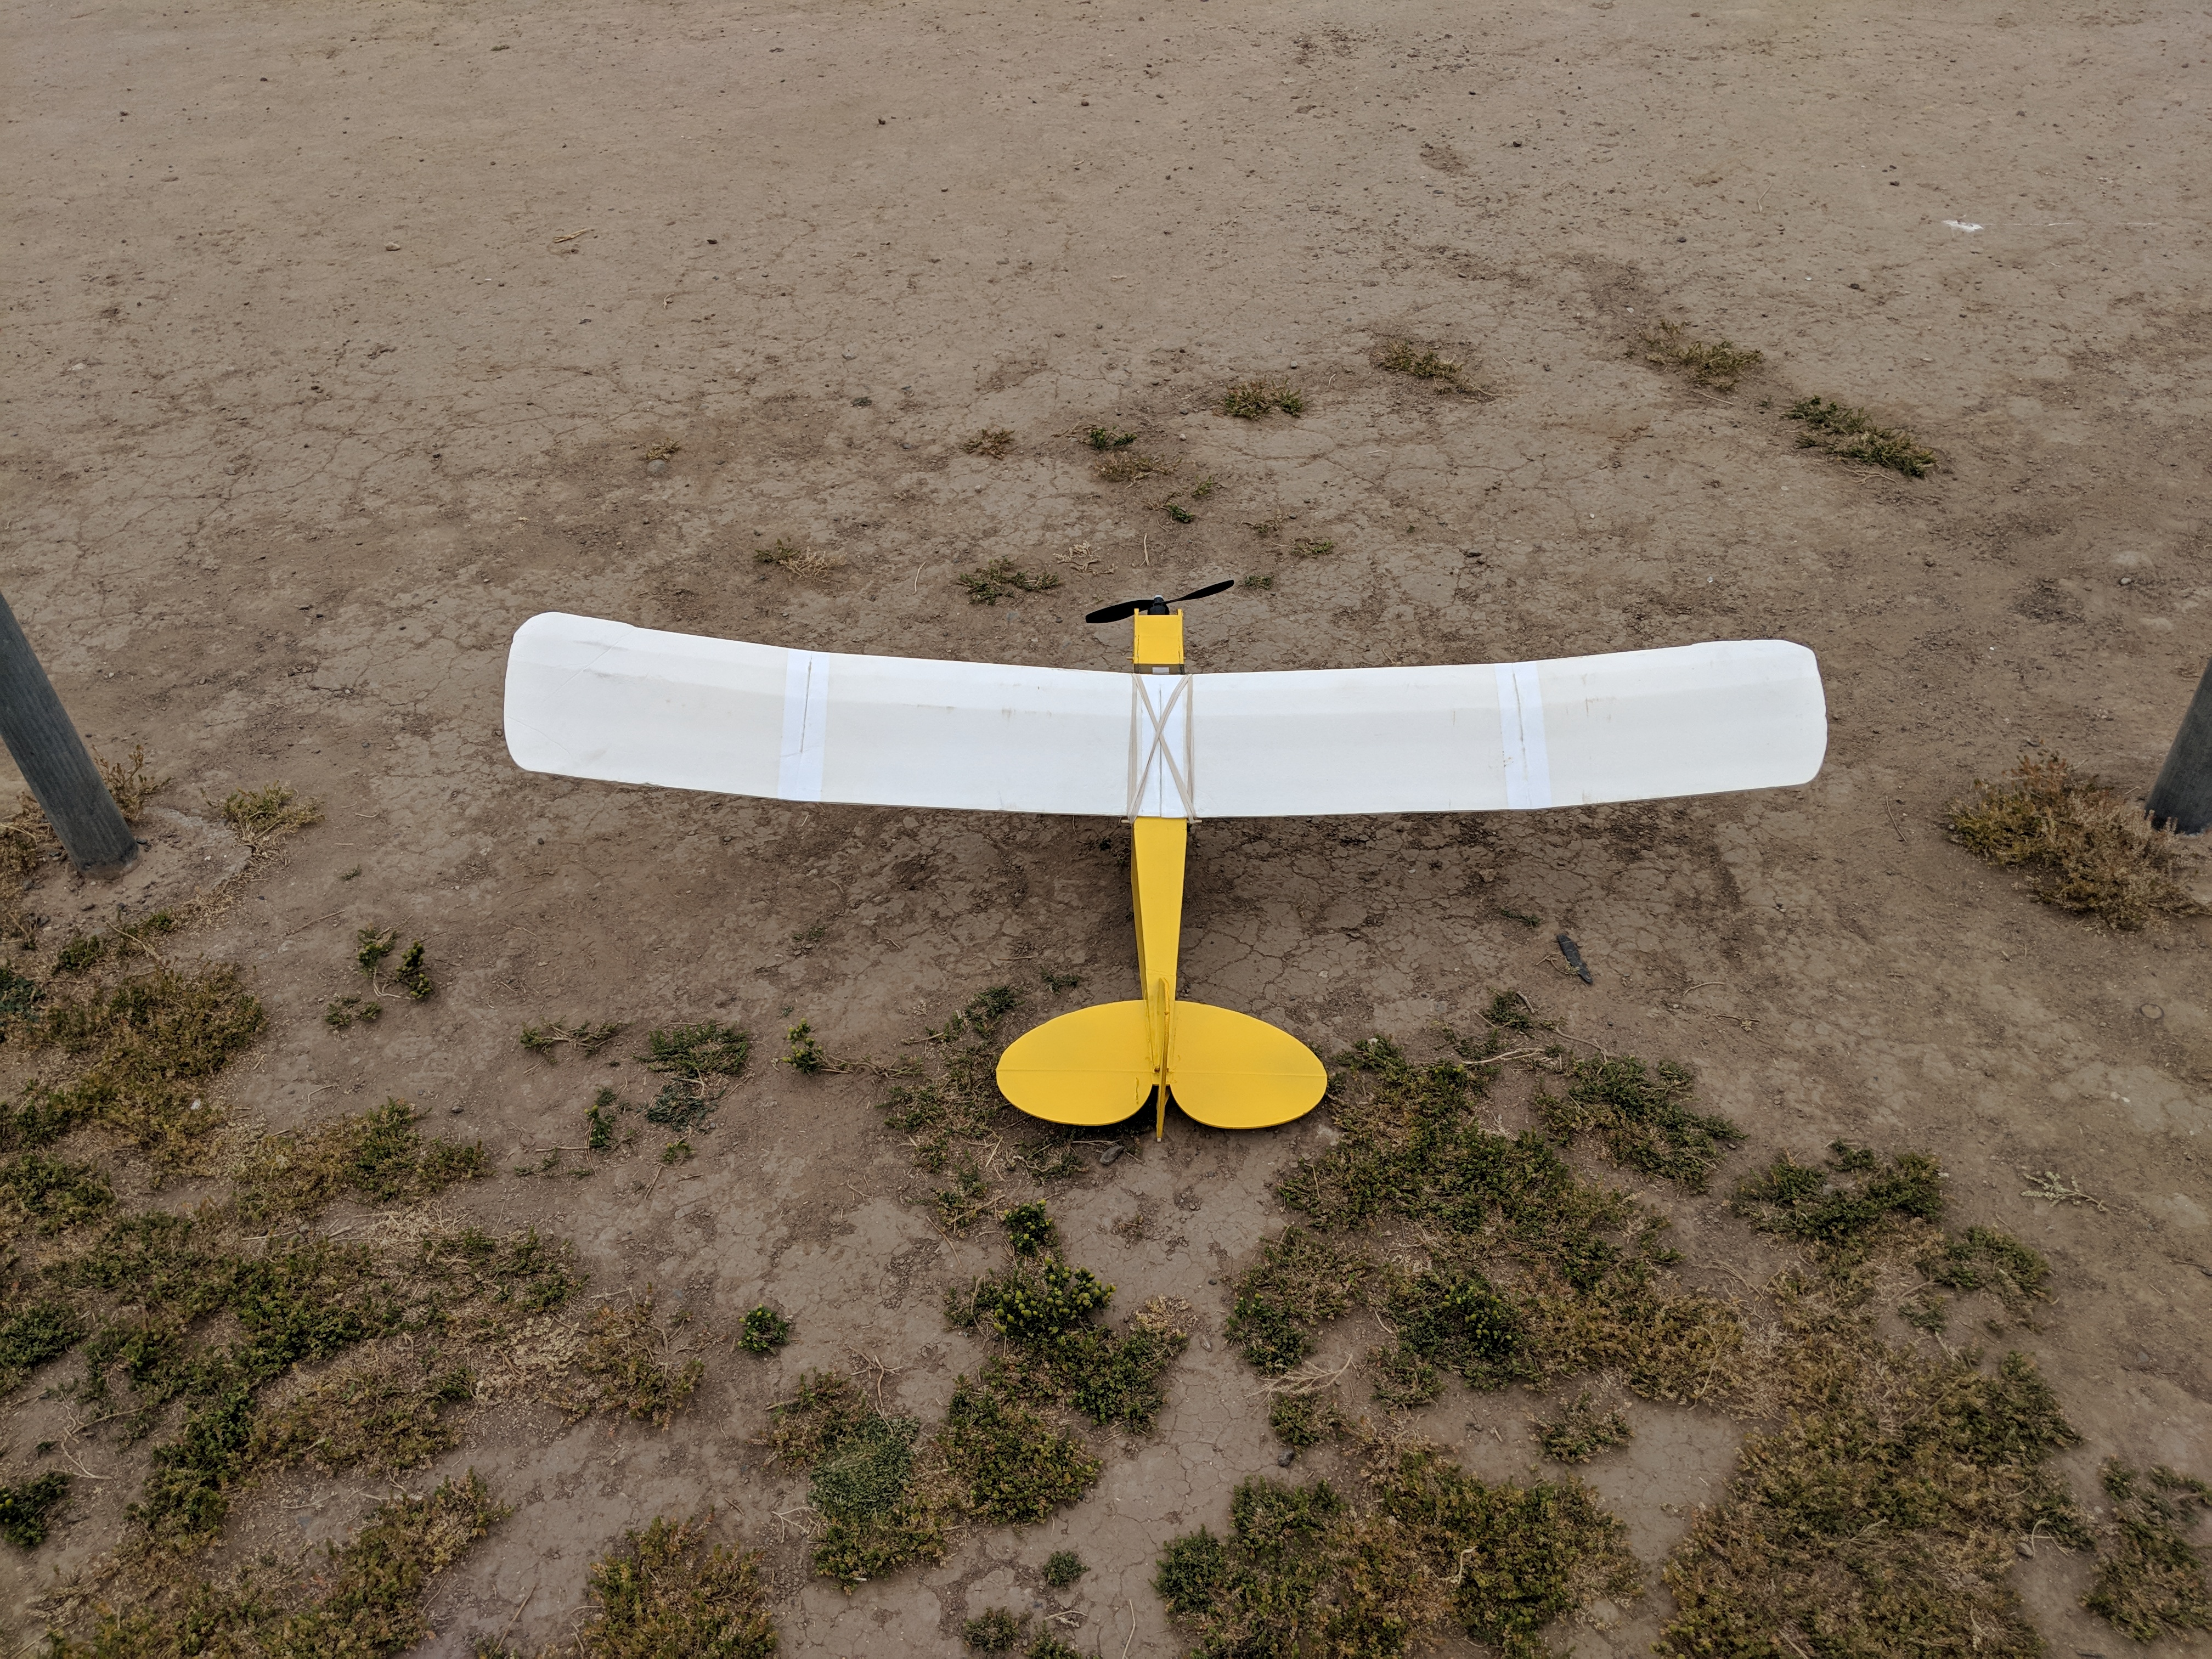 Simple Cub with Simple Soarer wing | FliteTest Forum